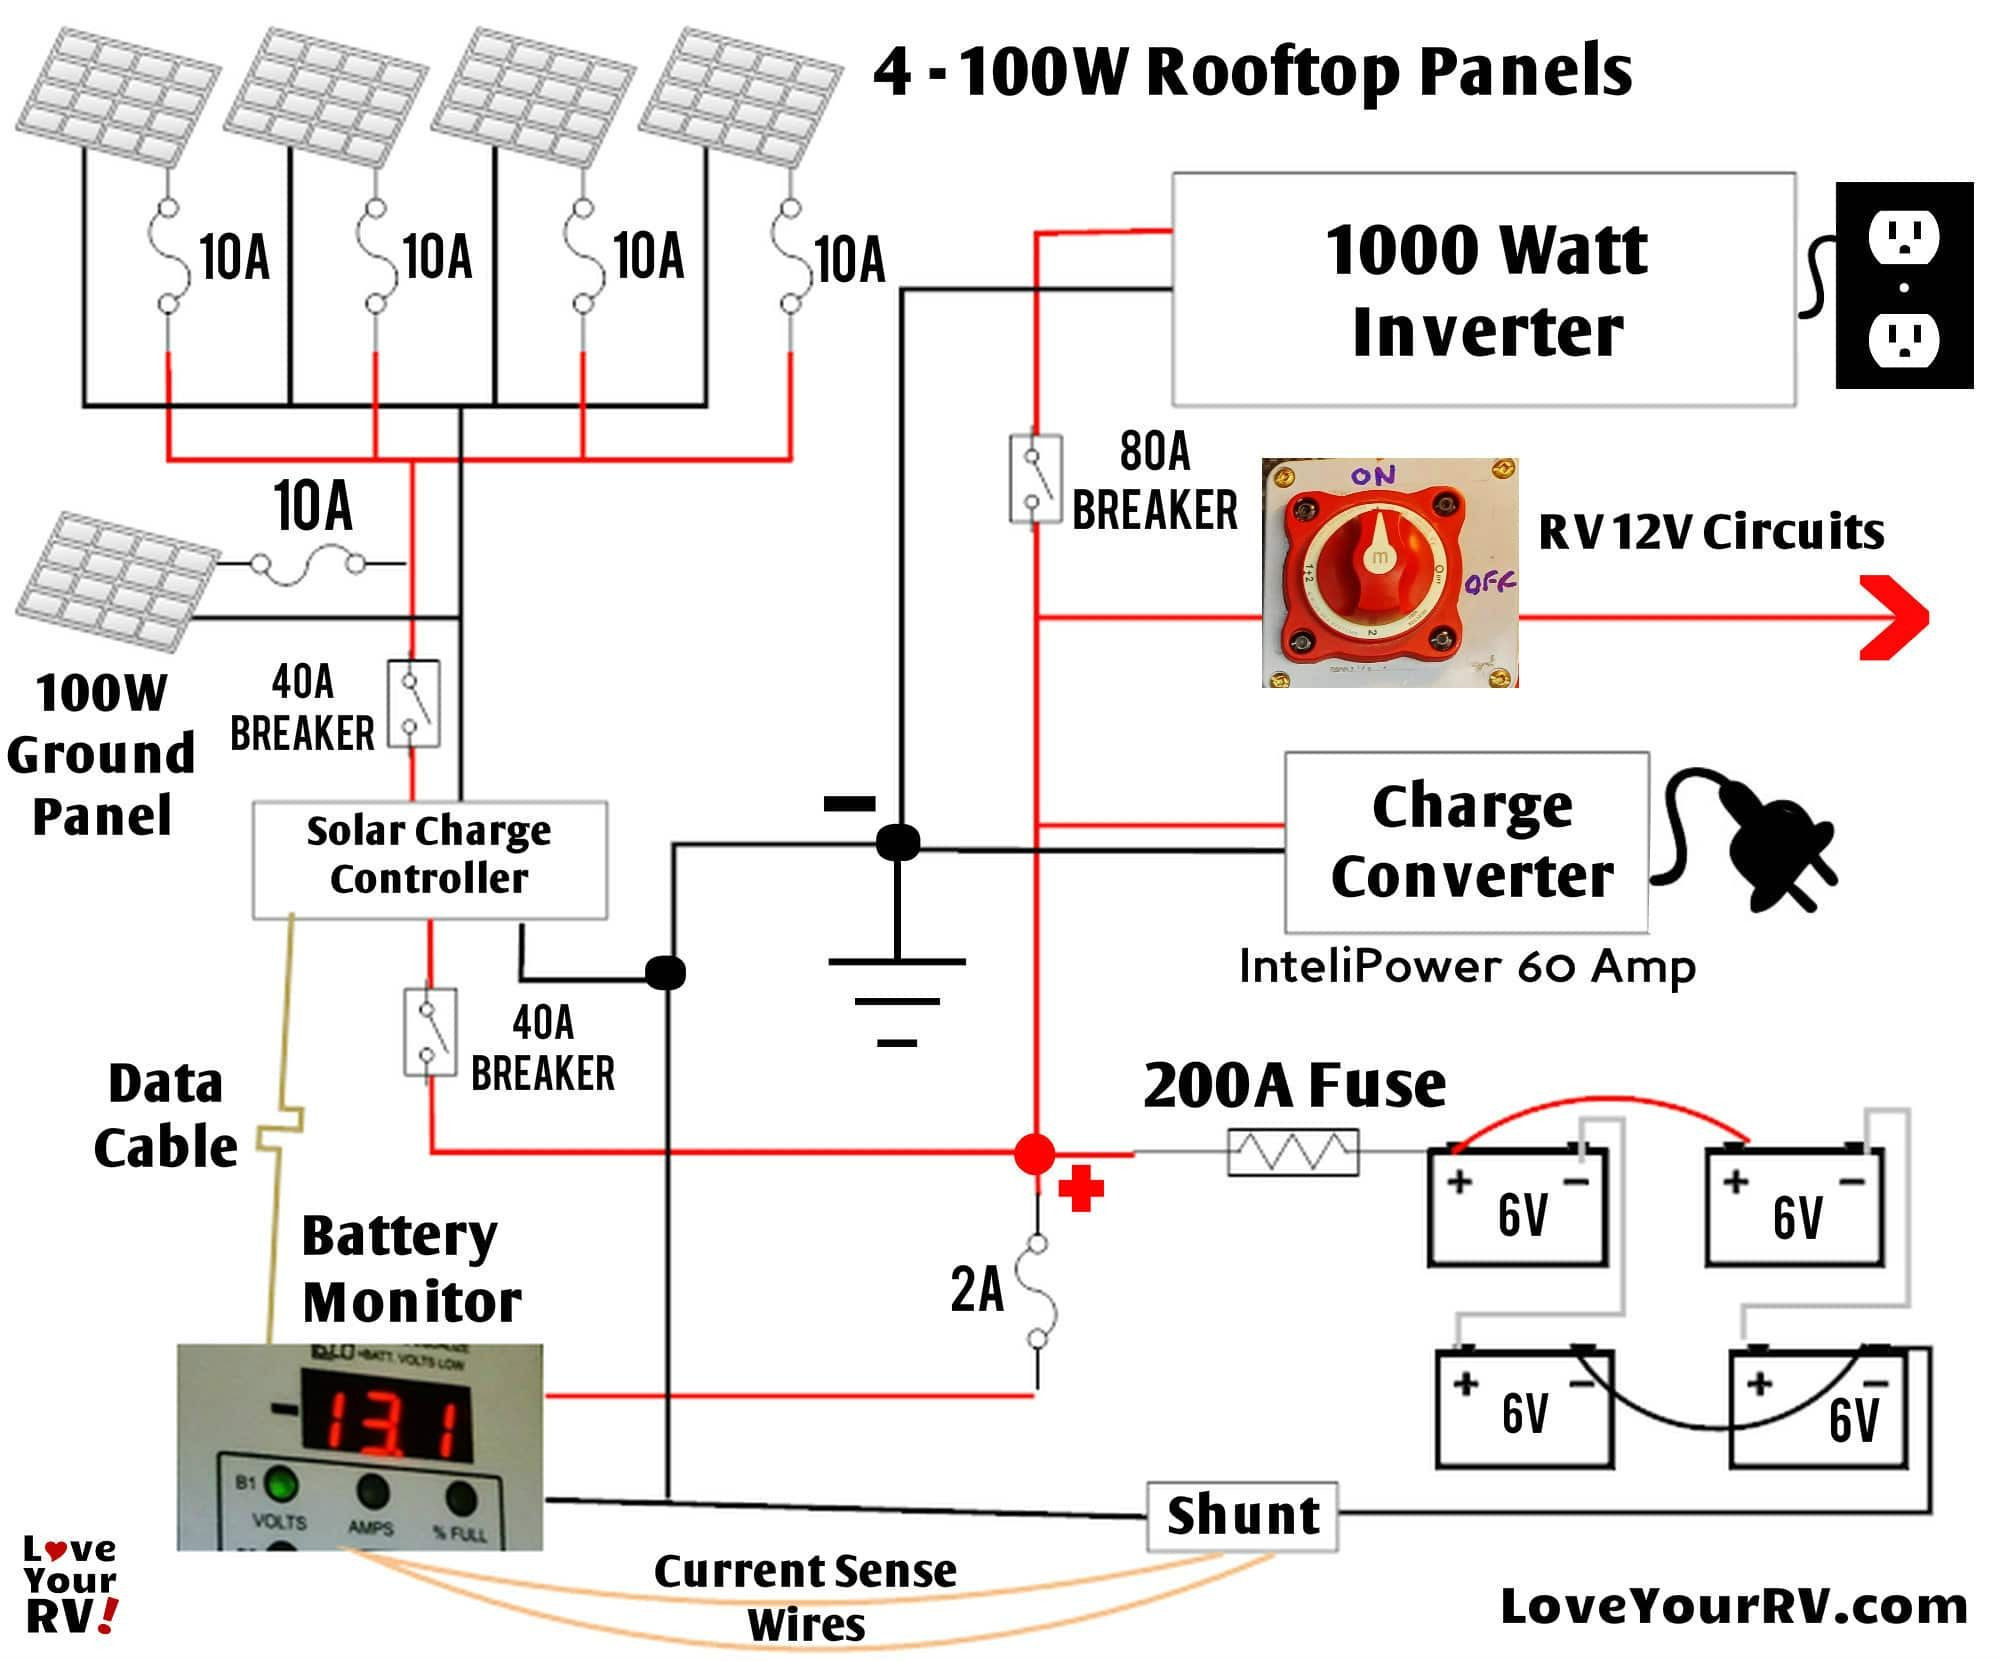 solar system wiring diagram Collection-Wiring Diagram solar Panel System New Detailed Look at Our Diy Rv Boondocking Power System 19-l